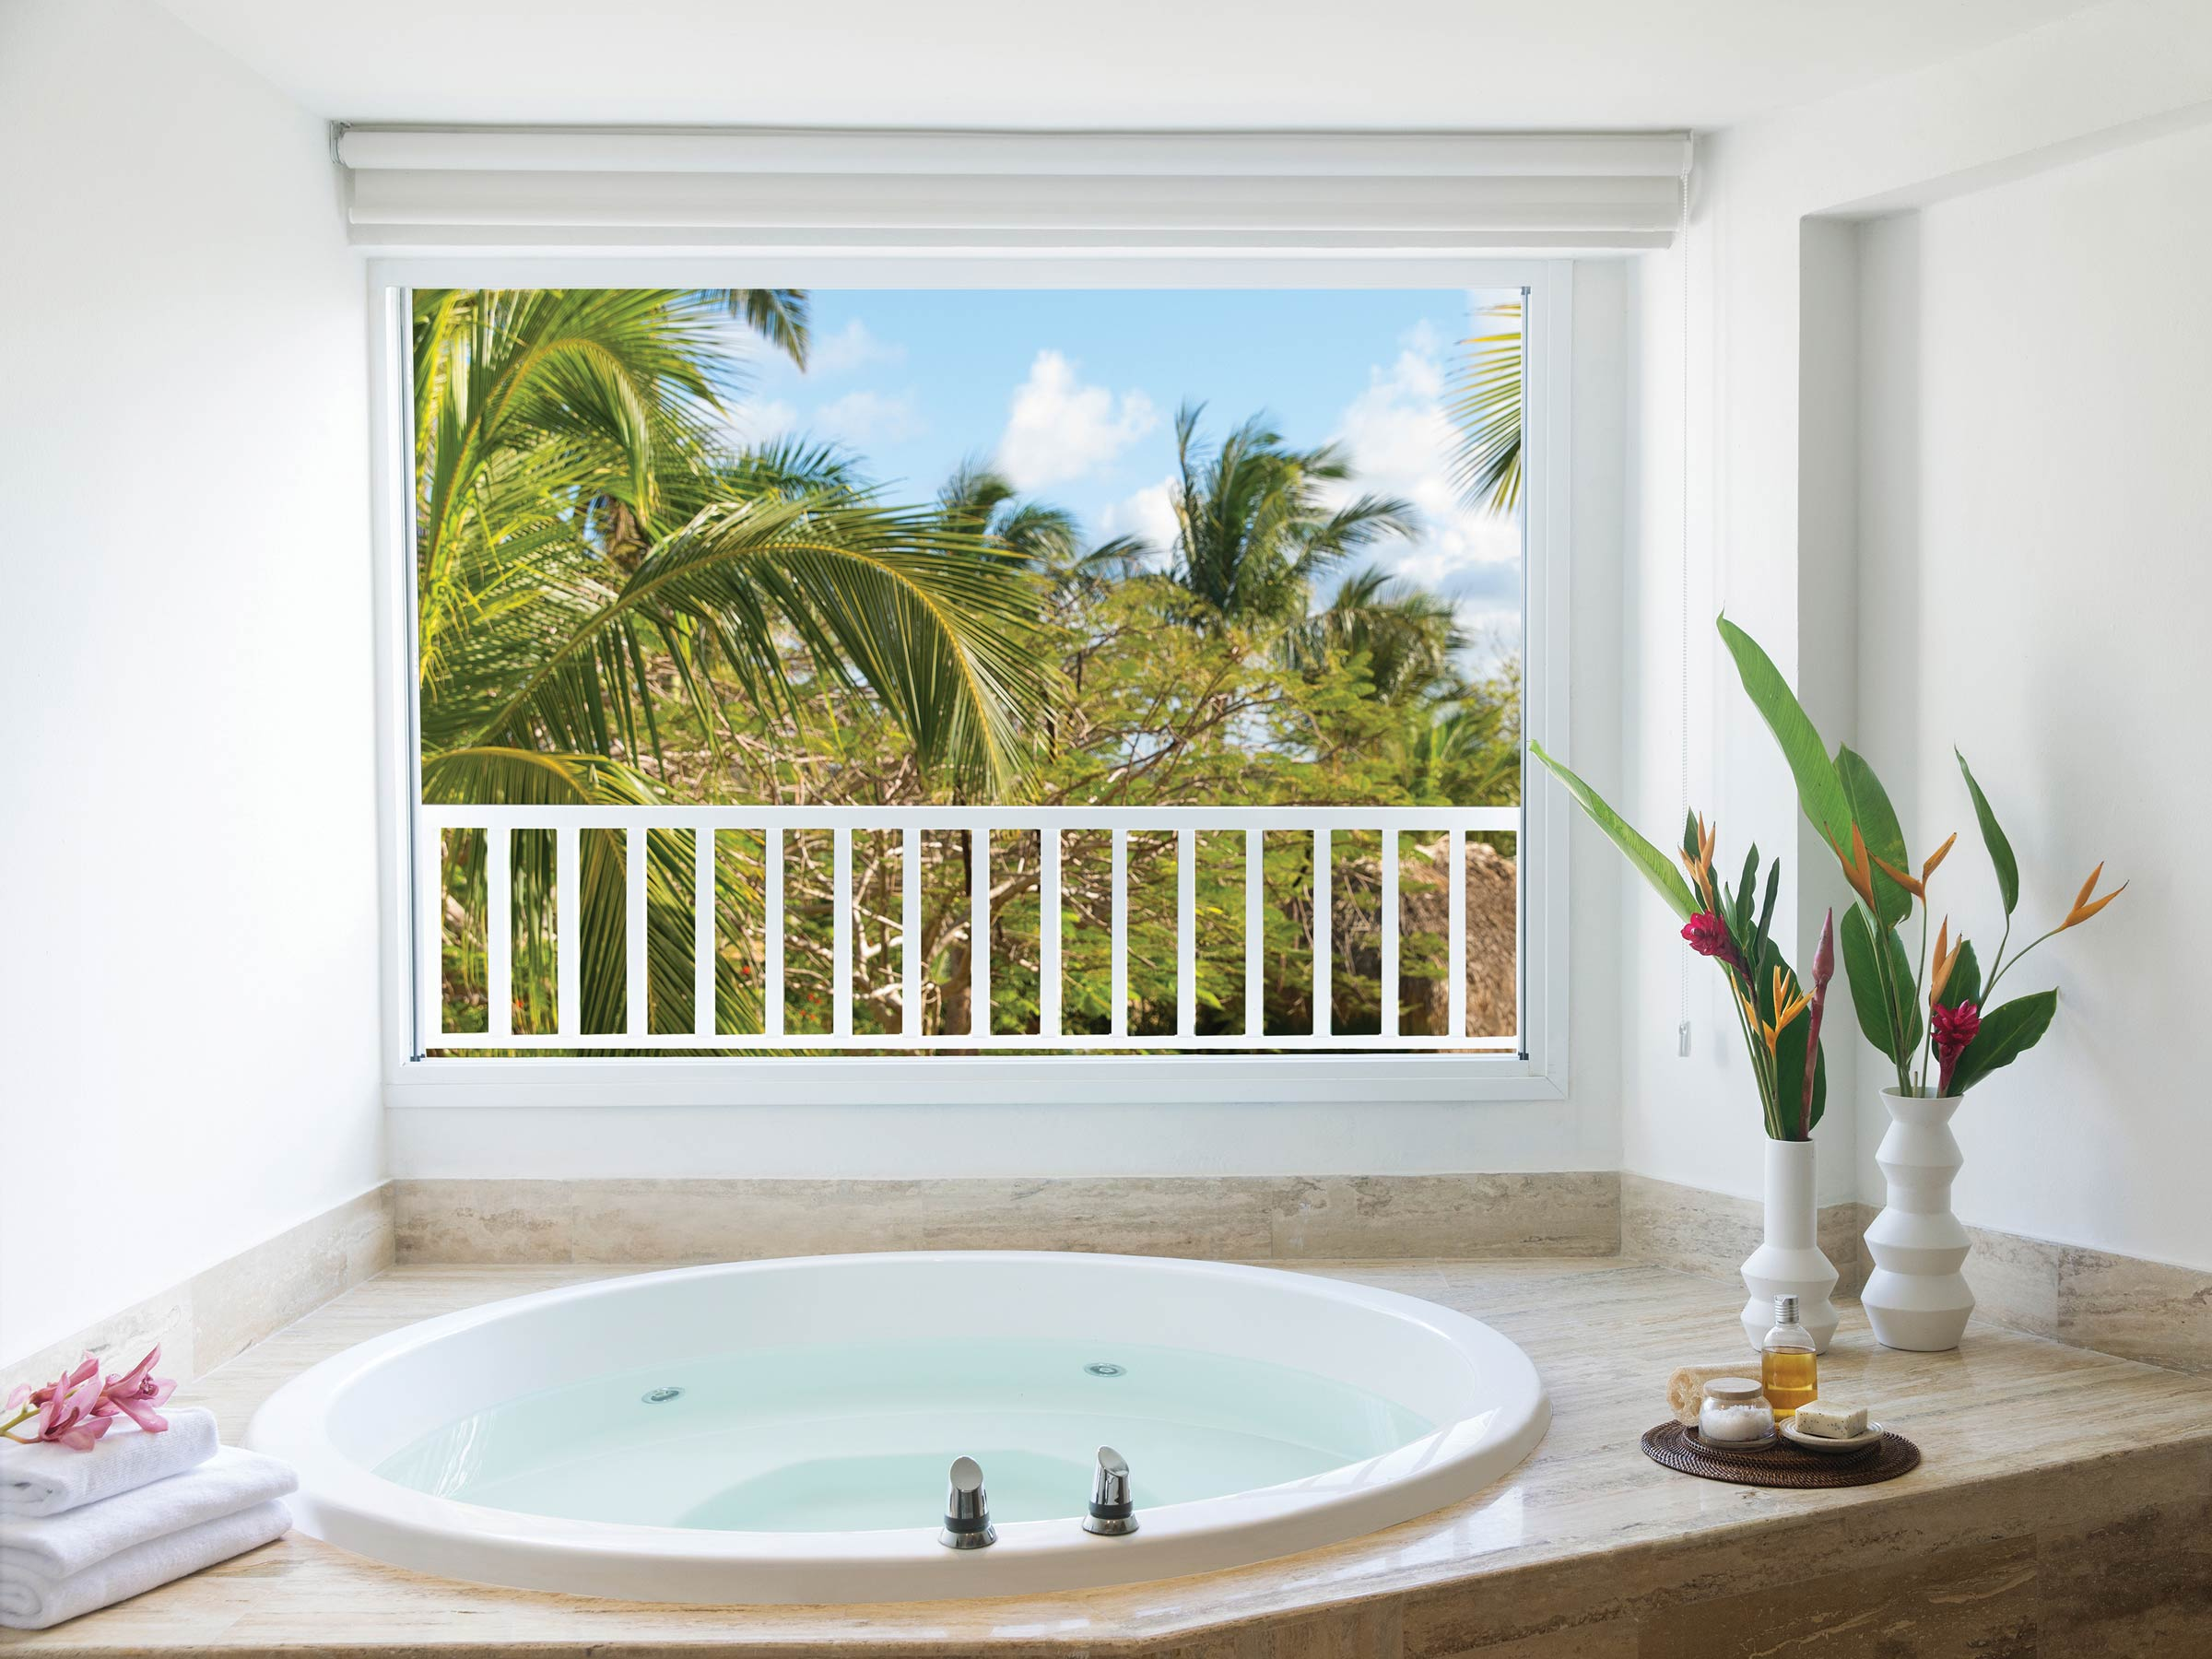 Double Bathtub in a Punta Cana Honeymoon Suite